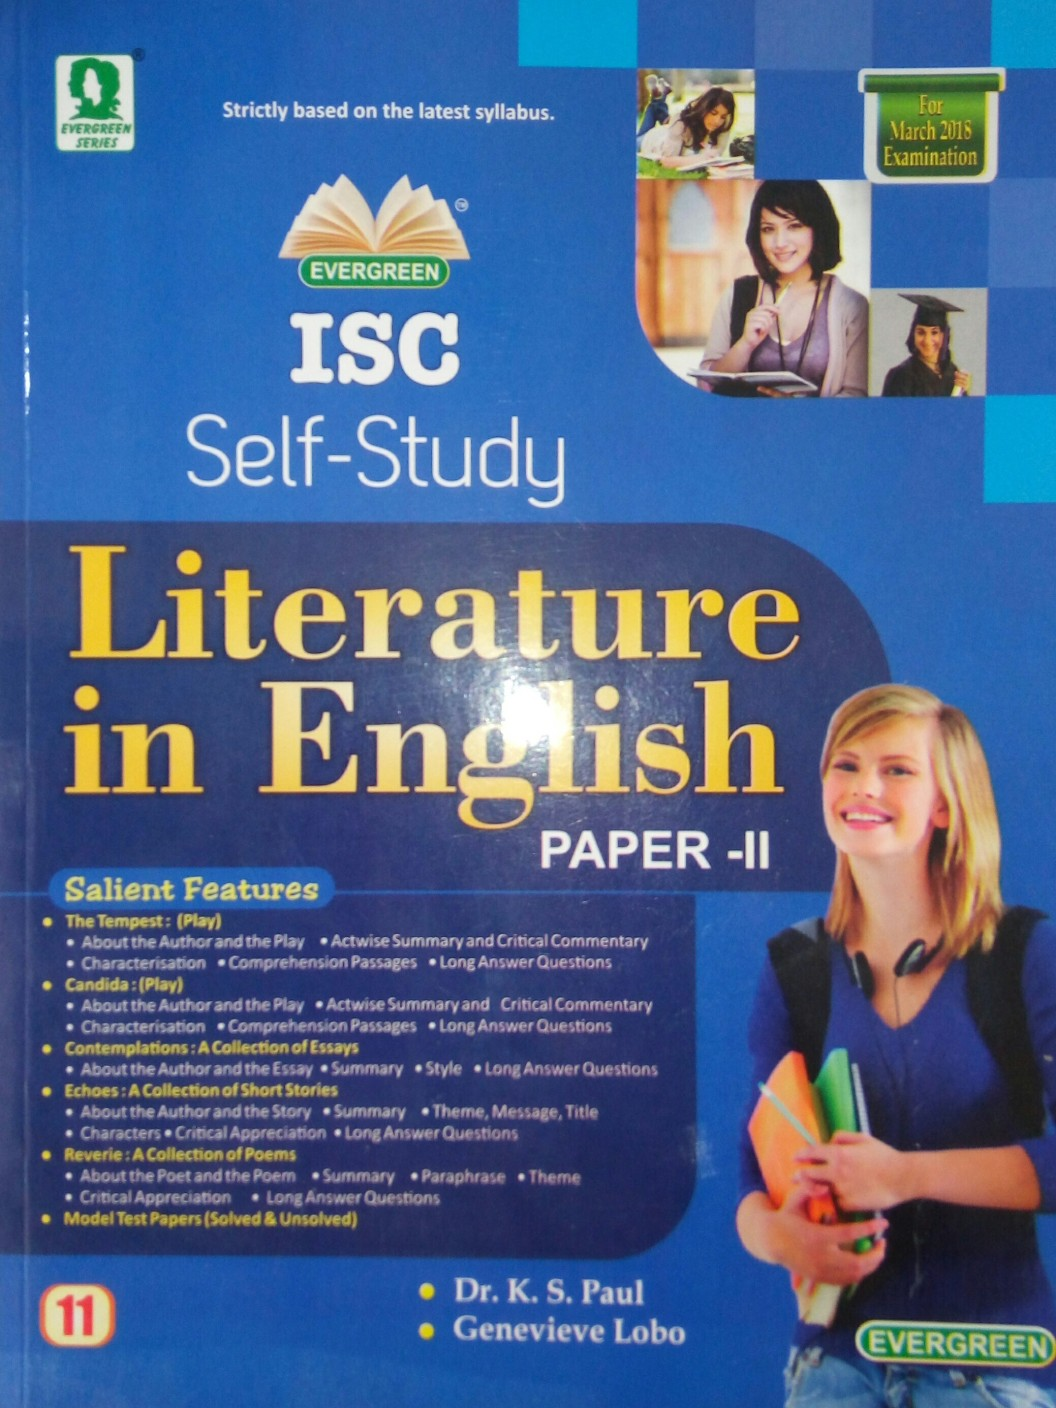 evergreen isc self study english literature class price in add to cart